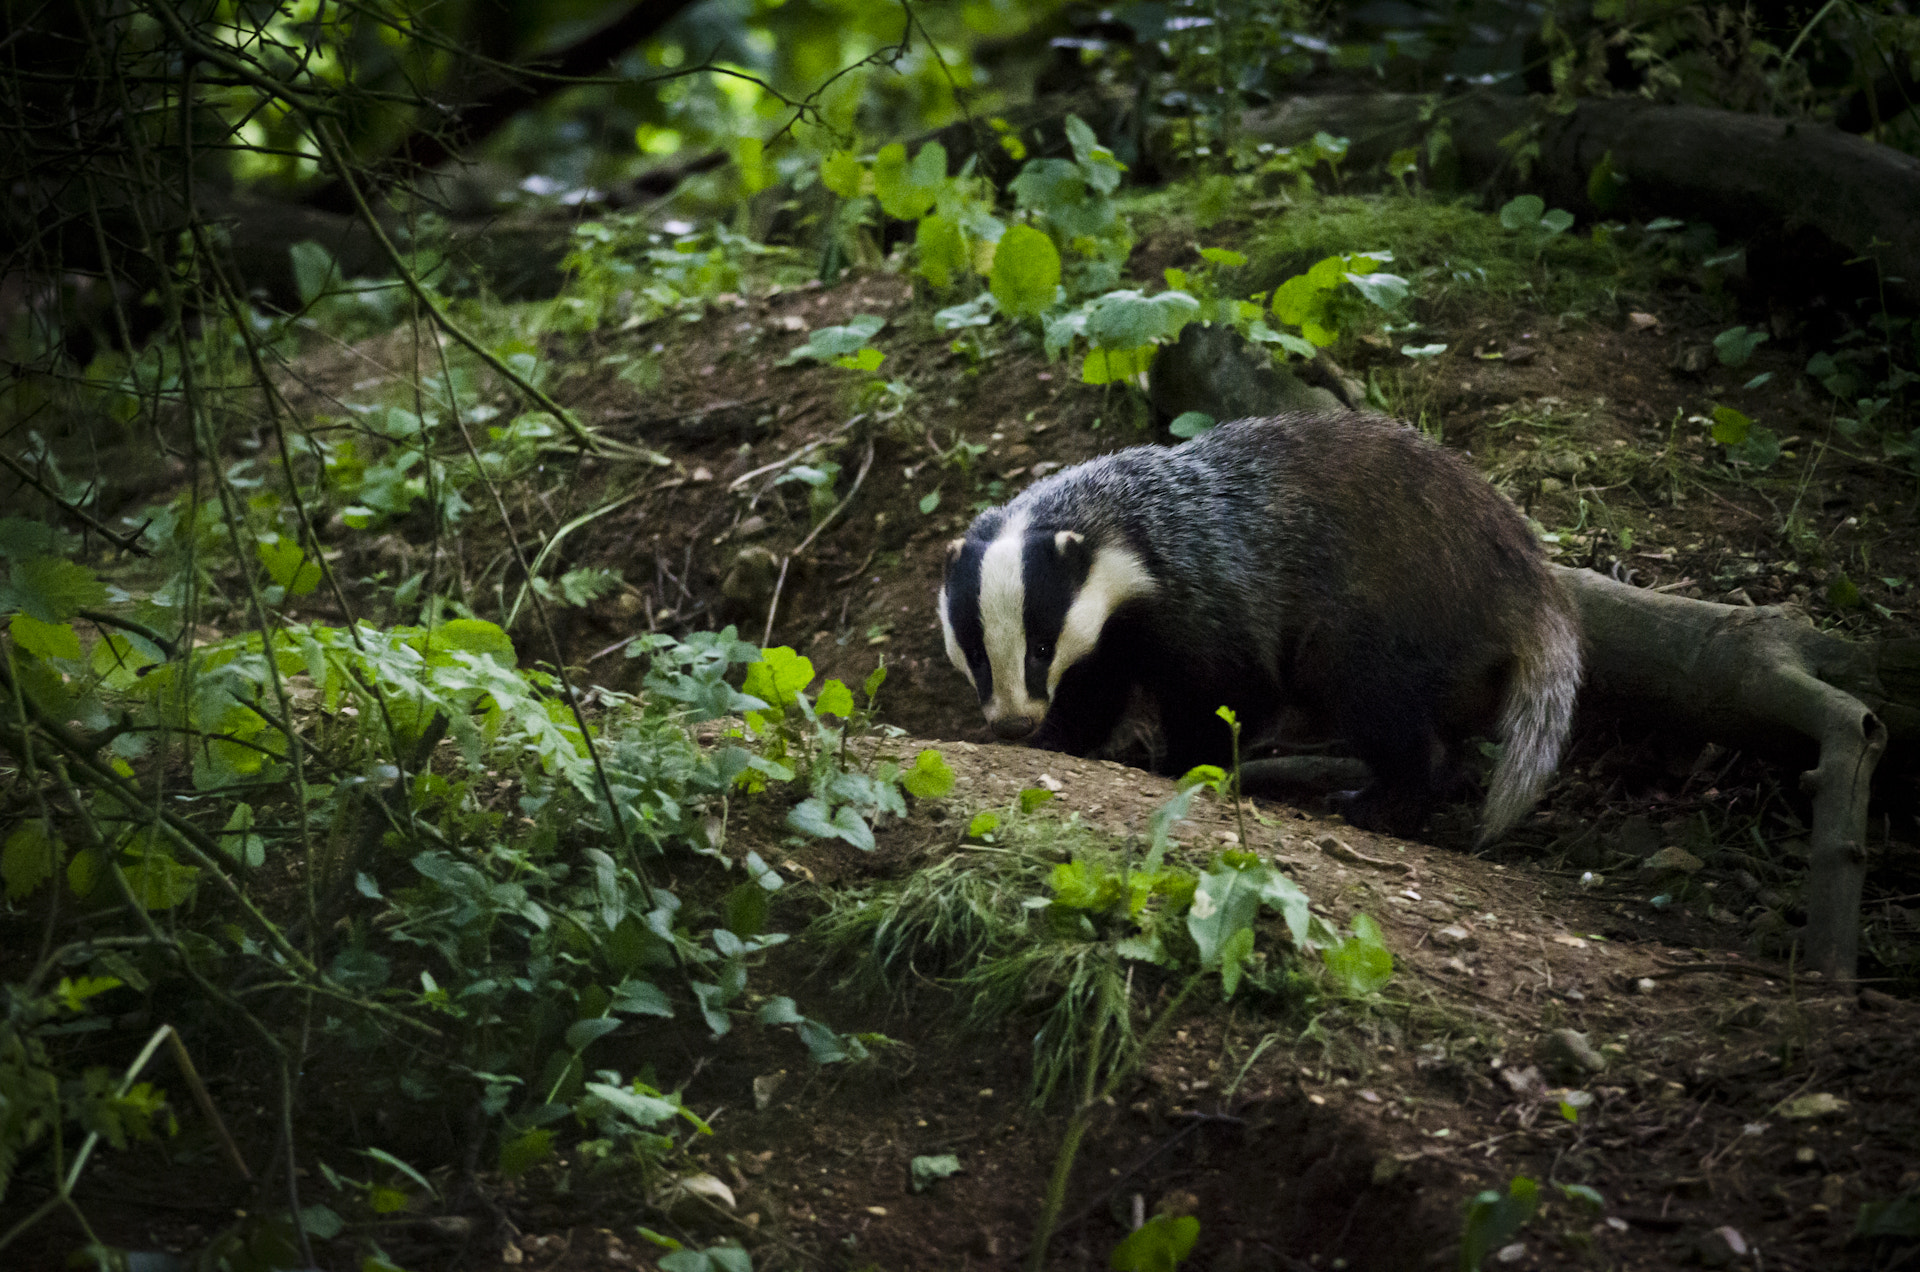 Photograph My first Badger encounter by Luke Millward on 500px